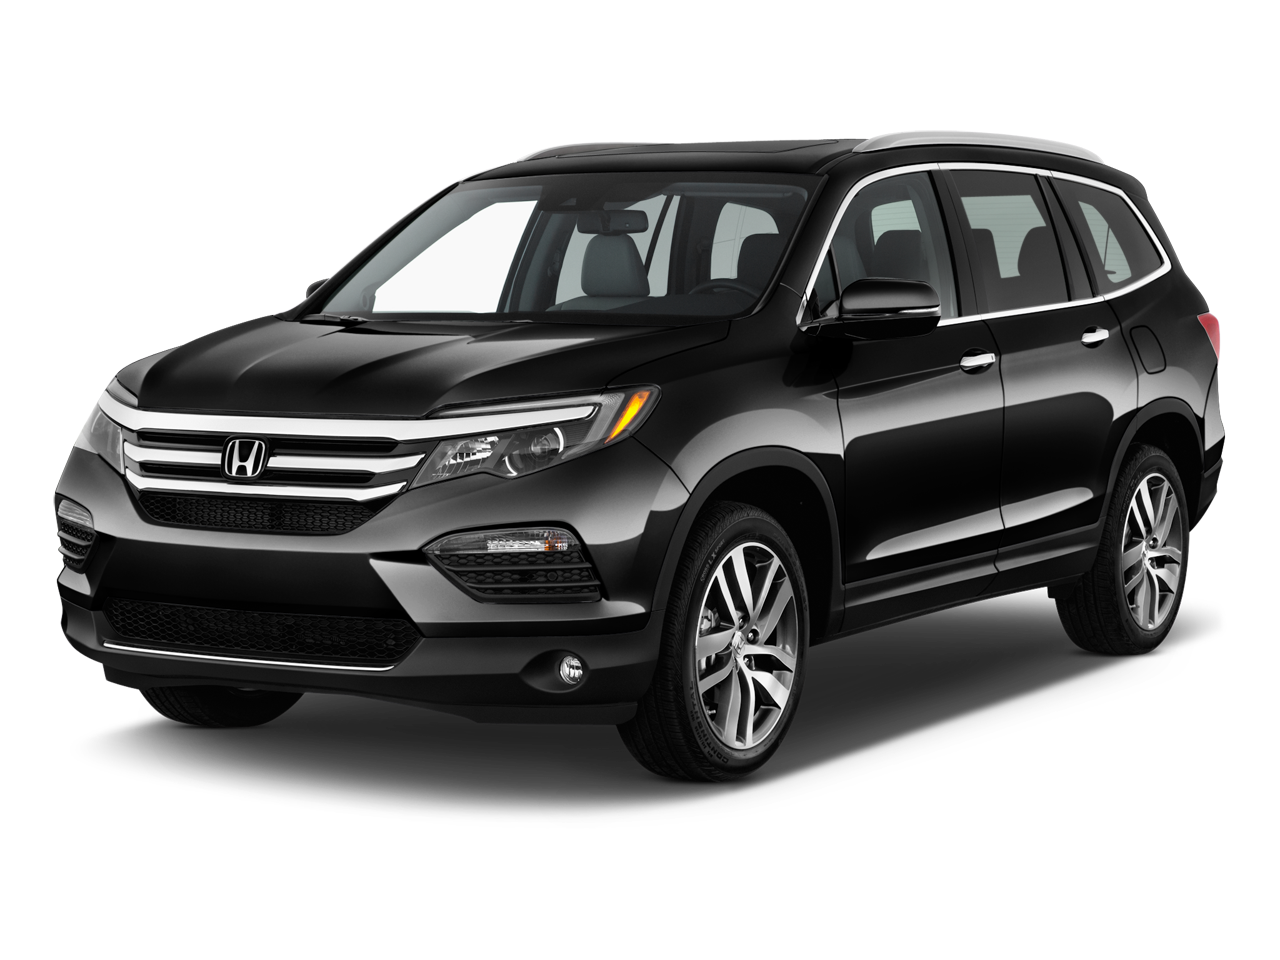 New 2017 honda pilot elite near capitol heights md for Honda pilot images